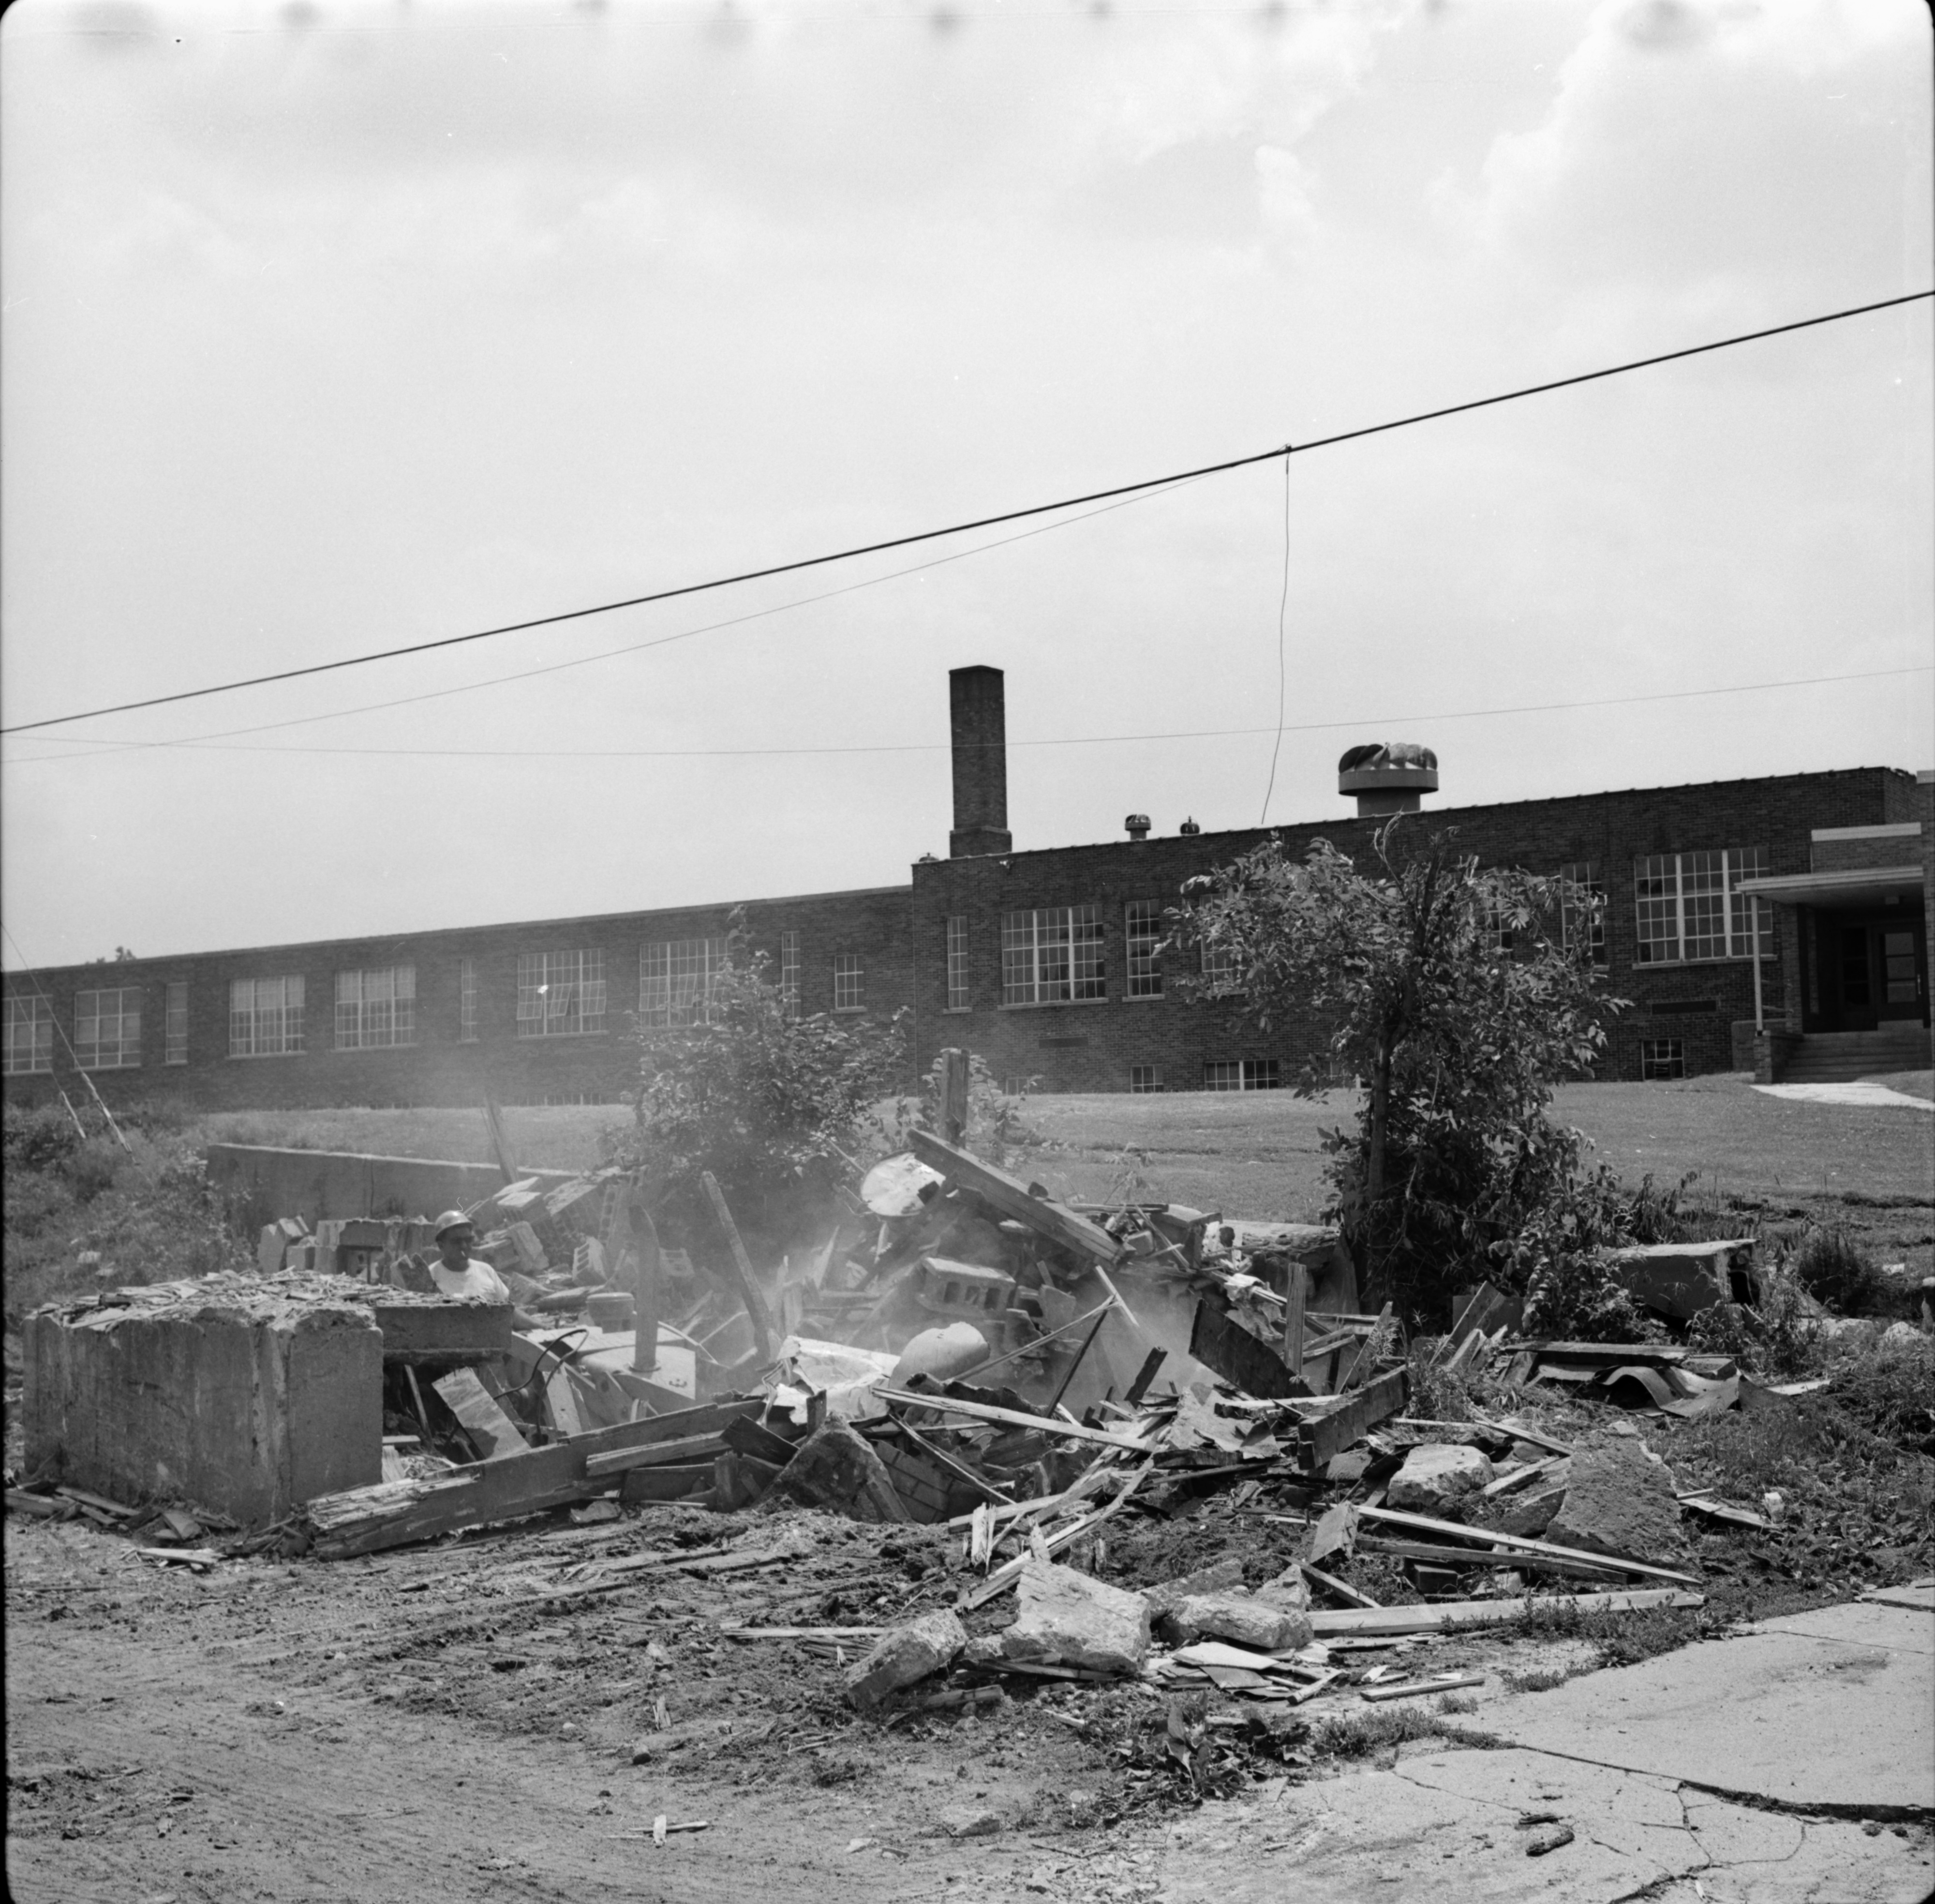 Bulldozer Demolishes Building Near Perry School During Urban Renewal, June 1967 image